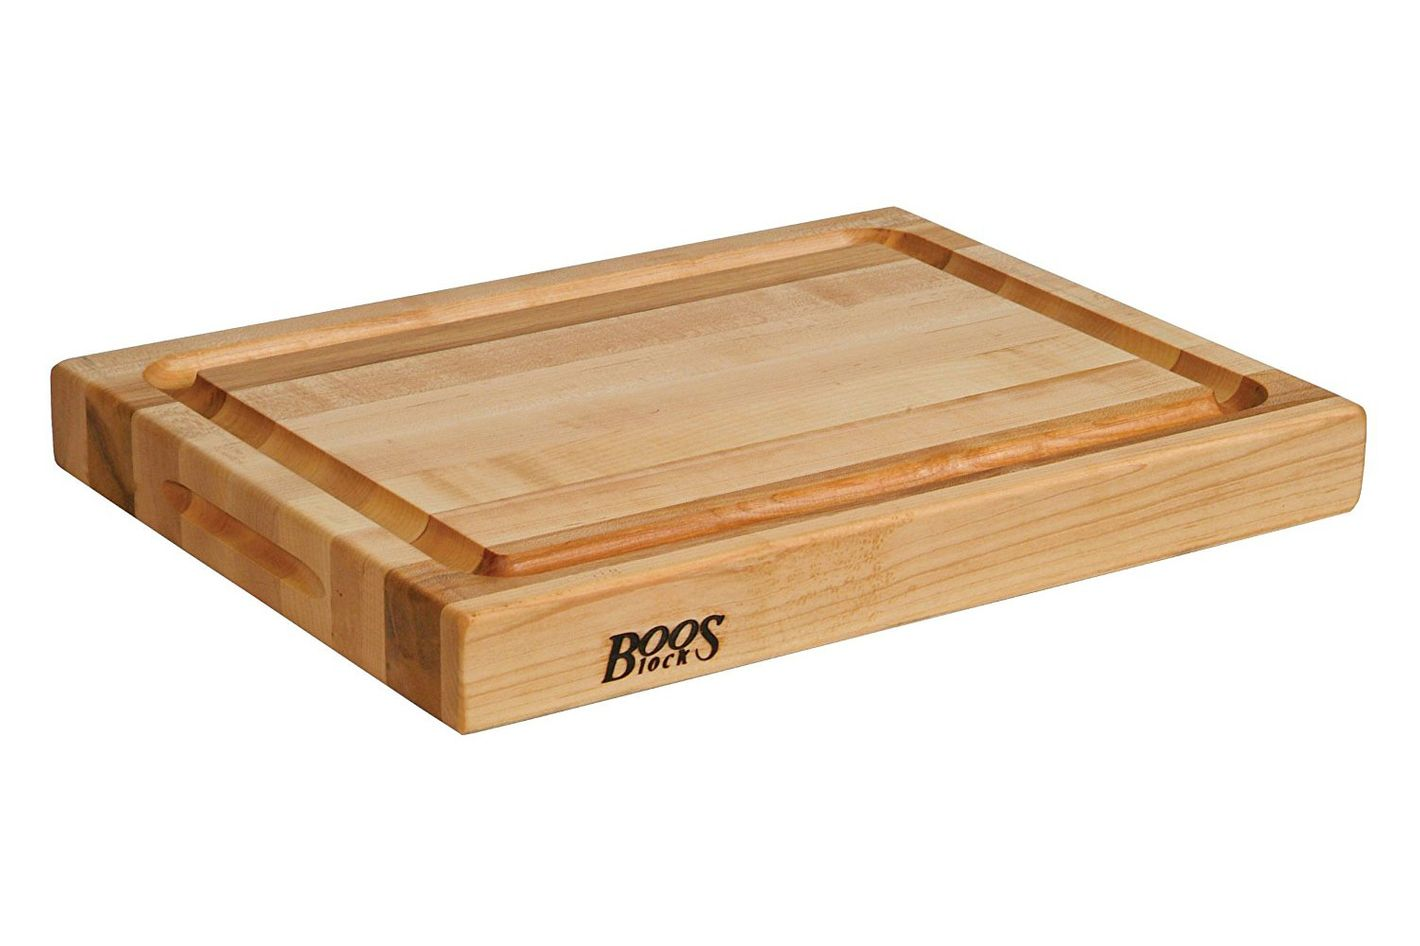 John Boos RA02-GRV Maple Wood Edge Grain Reversible Cutting Board With Juice Moat